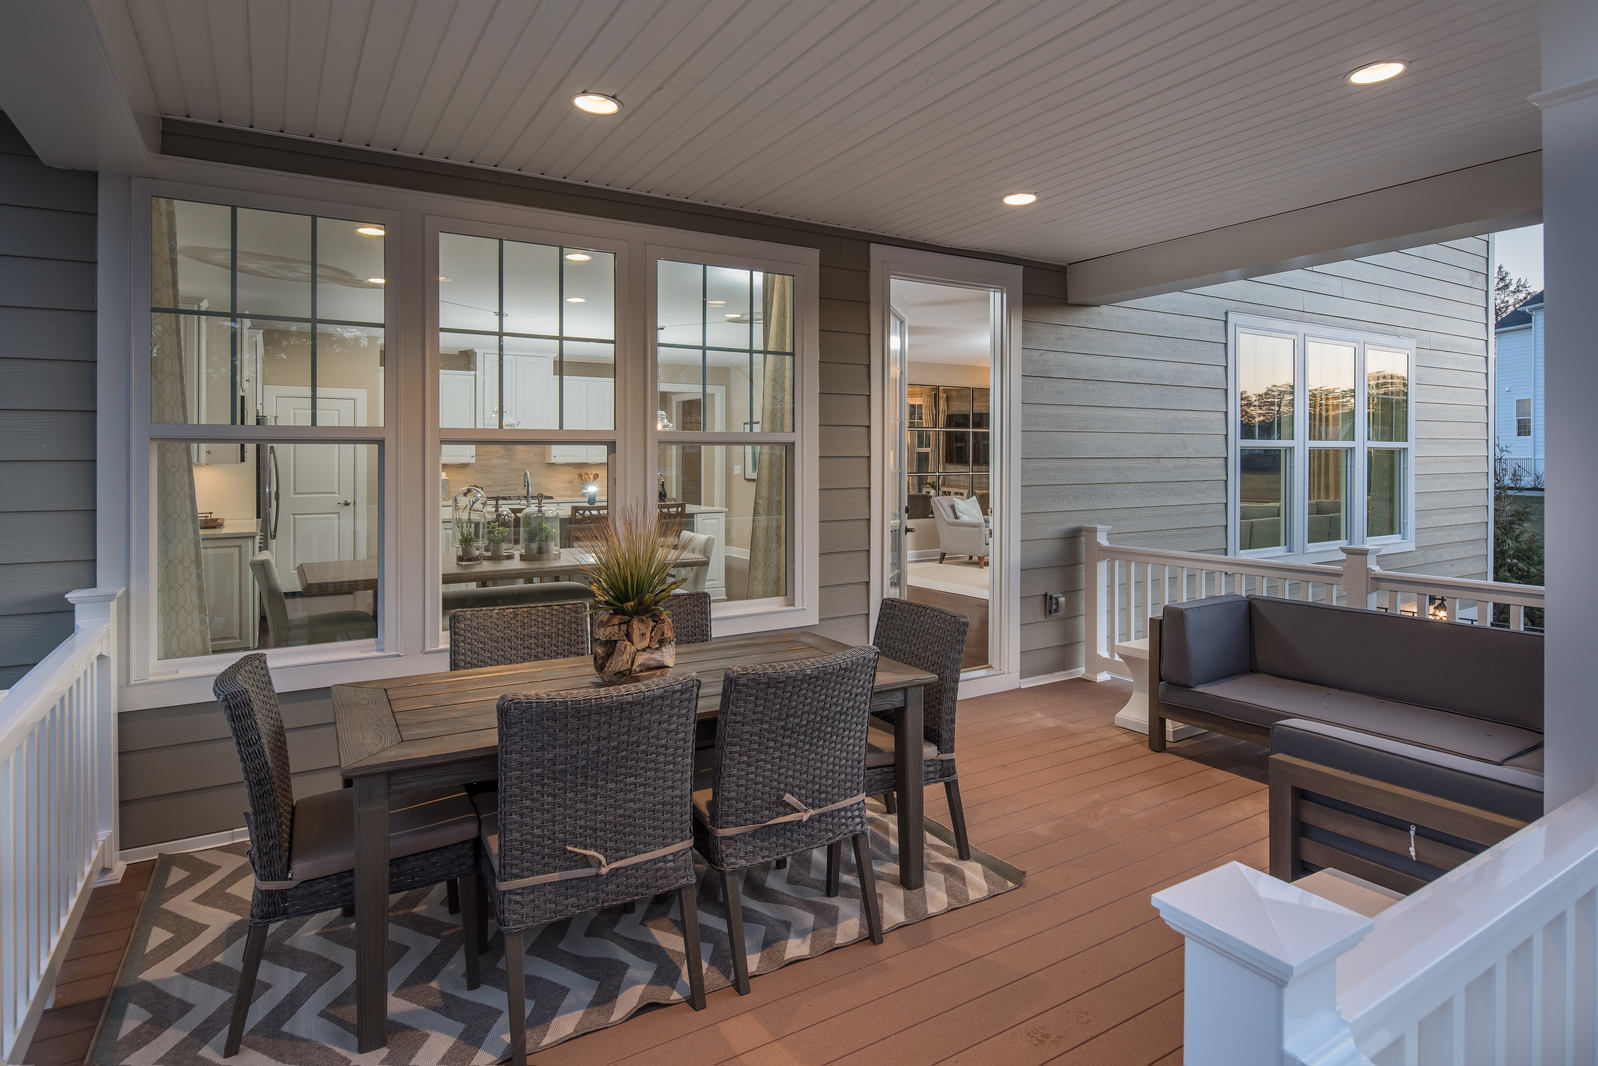 With our luxury covered porch option, dining al fresco is relaxing any time of year.